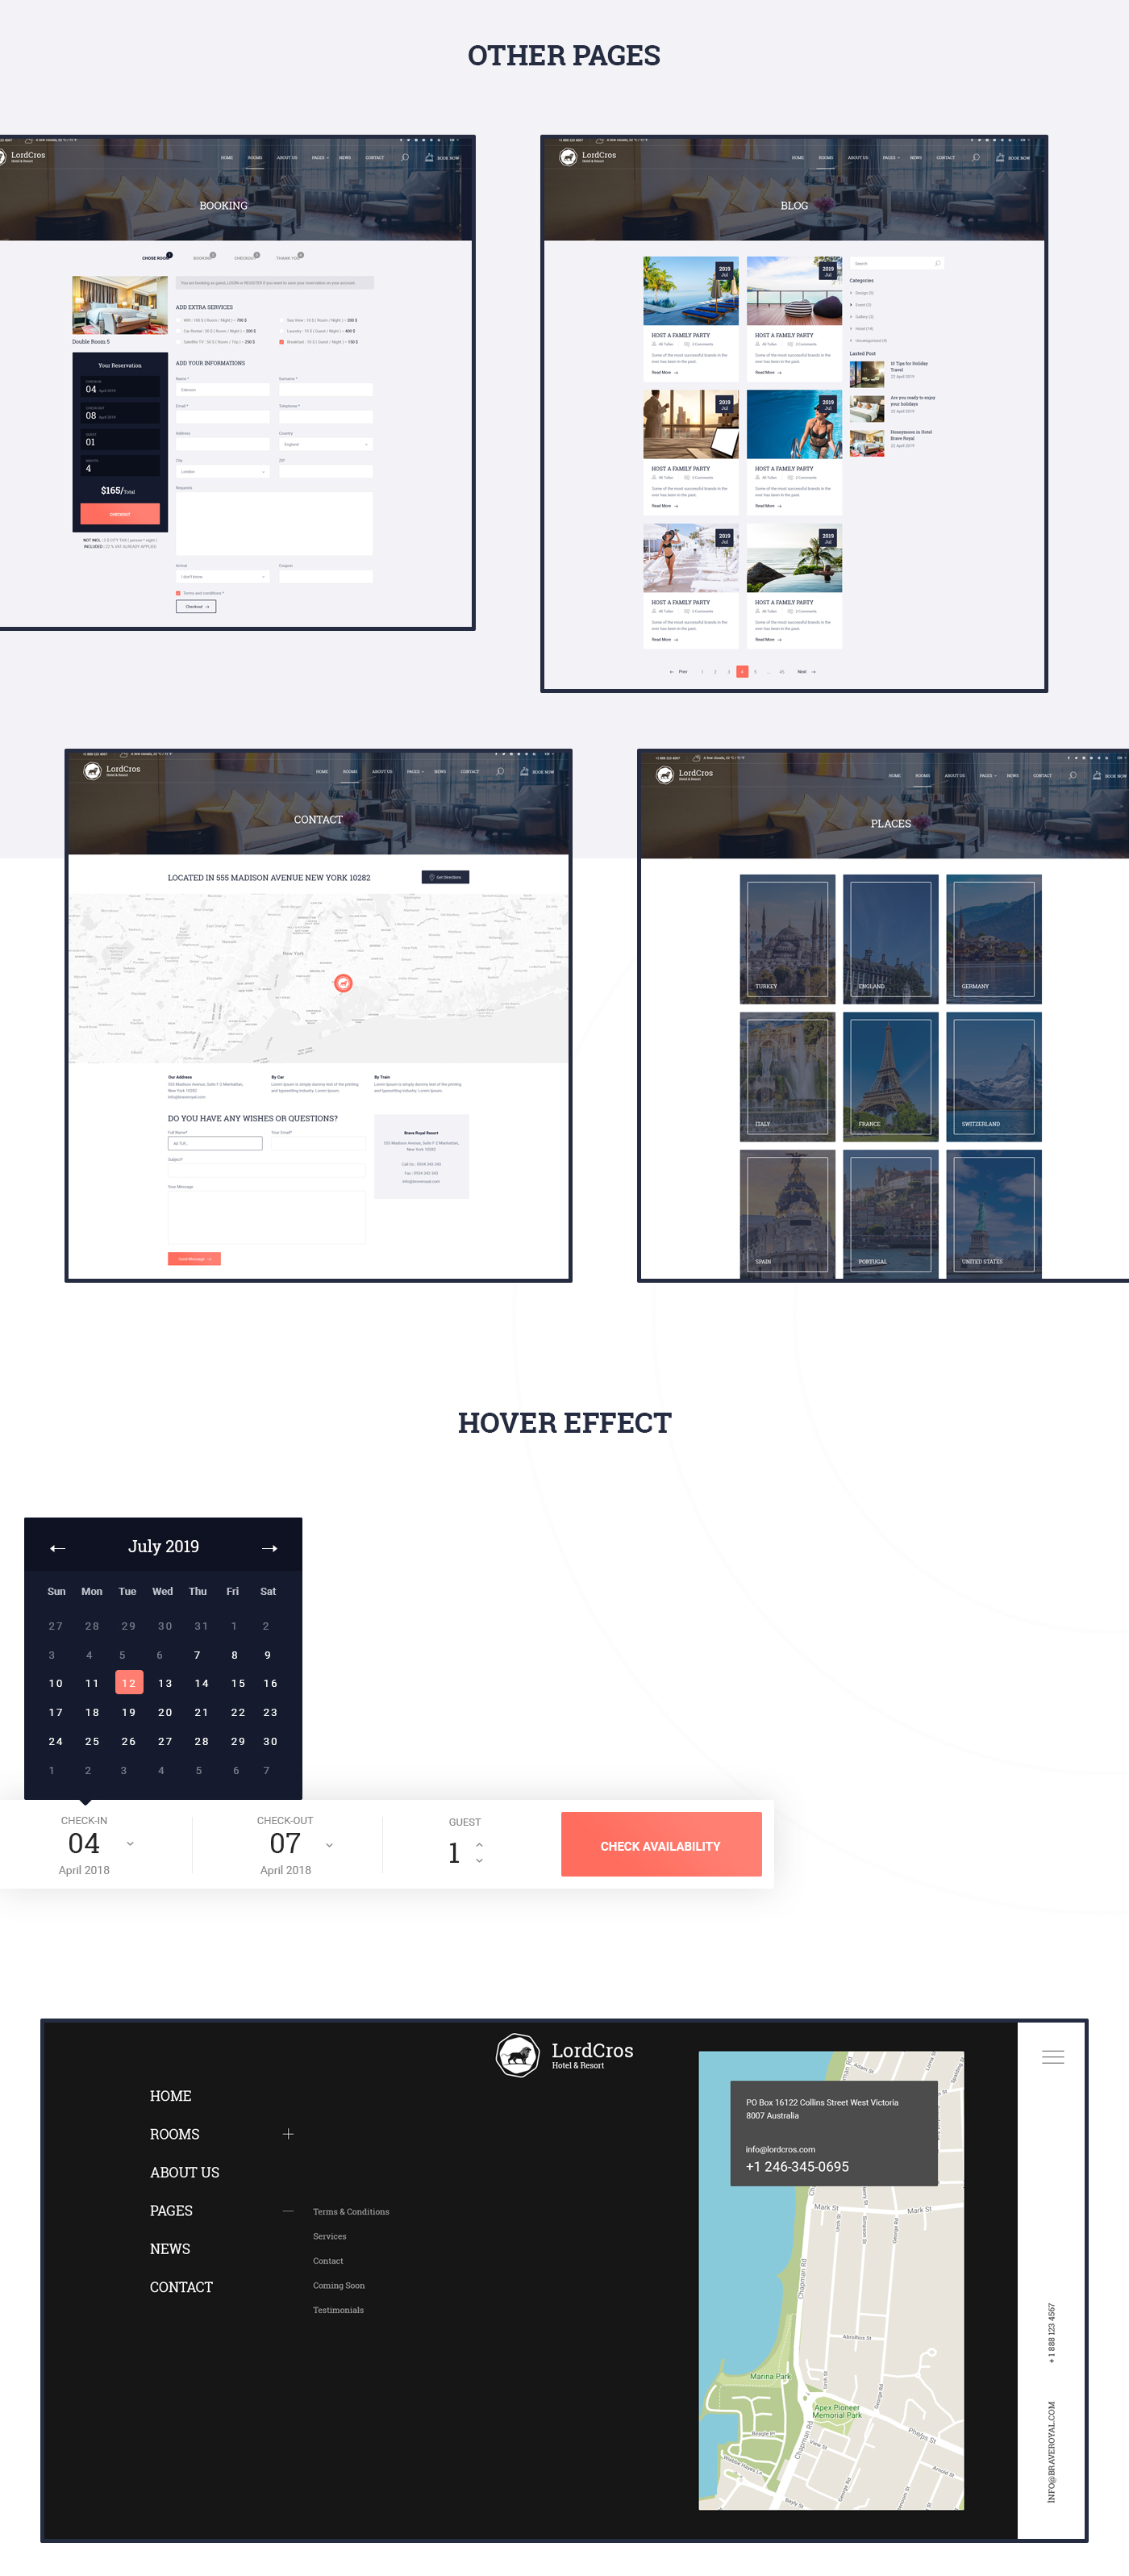 LordCros - Hotel, Resort & Spa PSD Template - 5